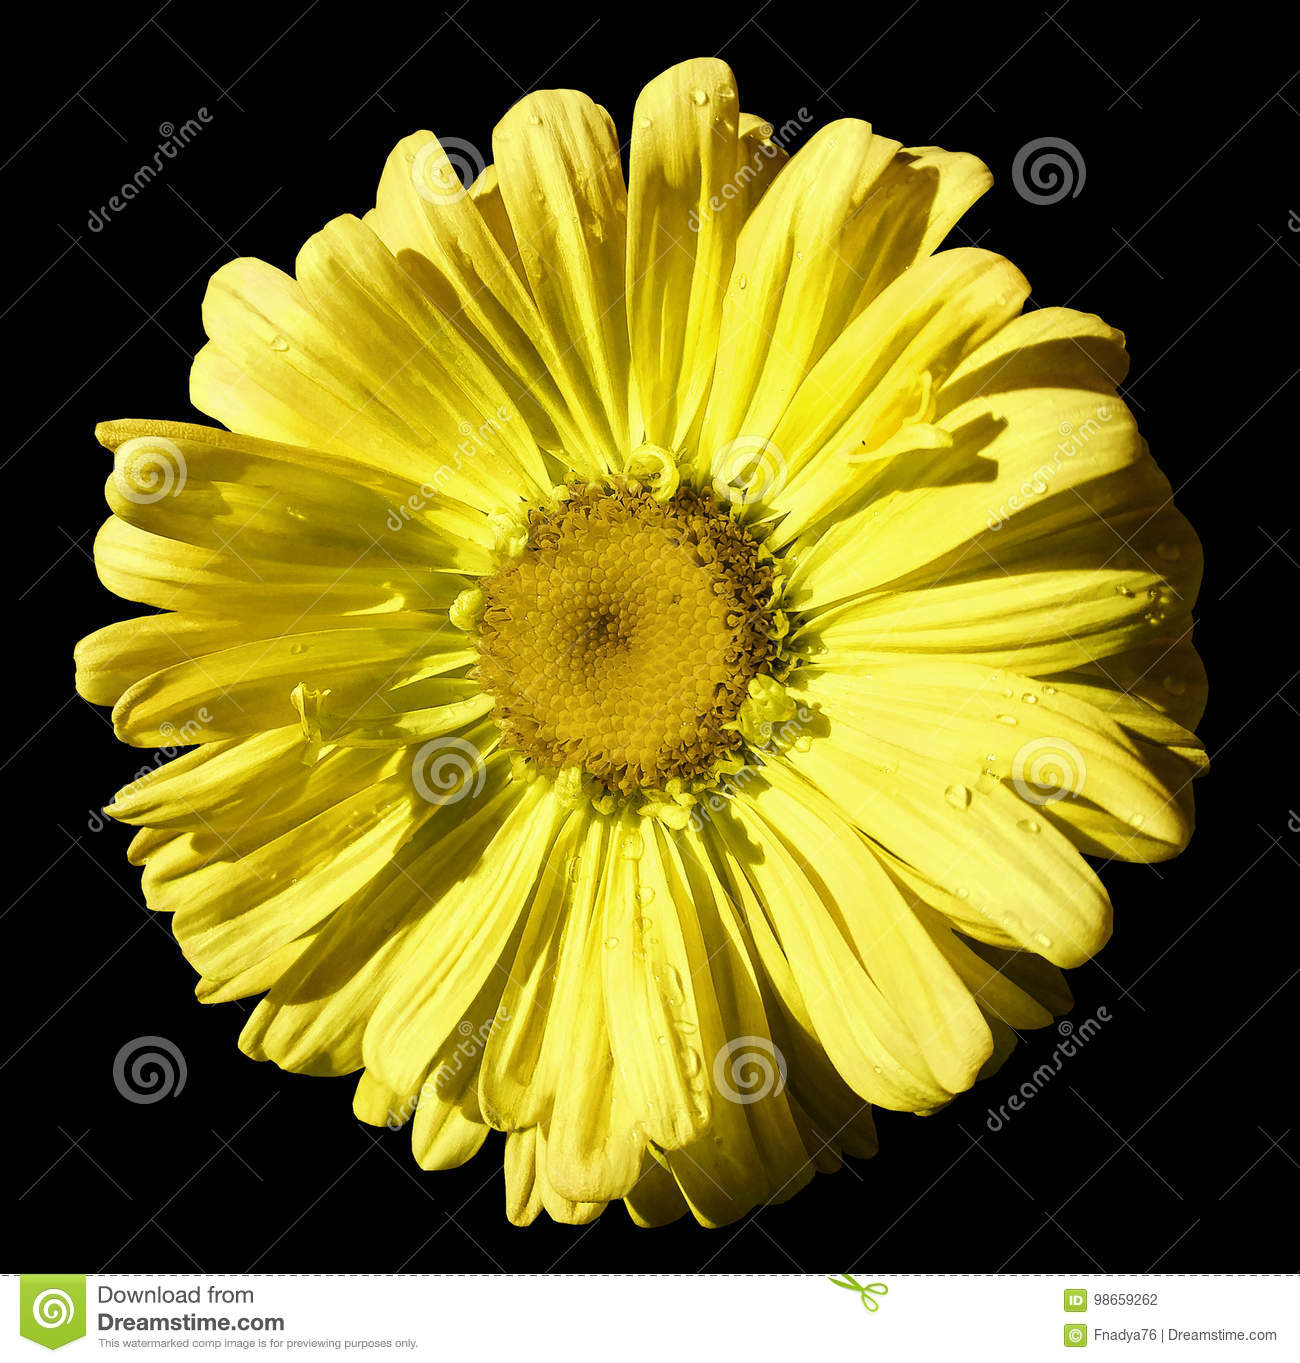 Flower yellow Chamomile on black isolated background with clipping path. Daisy orange-yellow with droplets of water for design. C